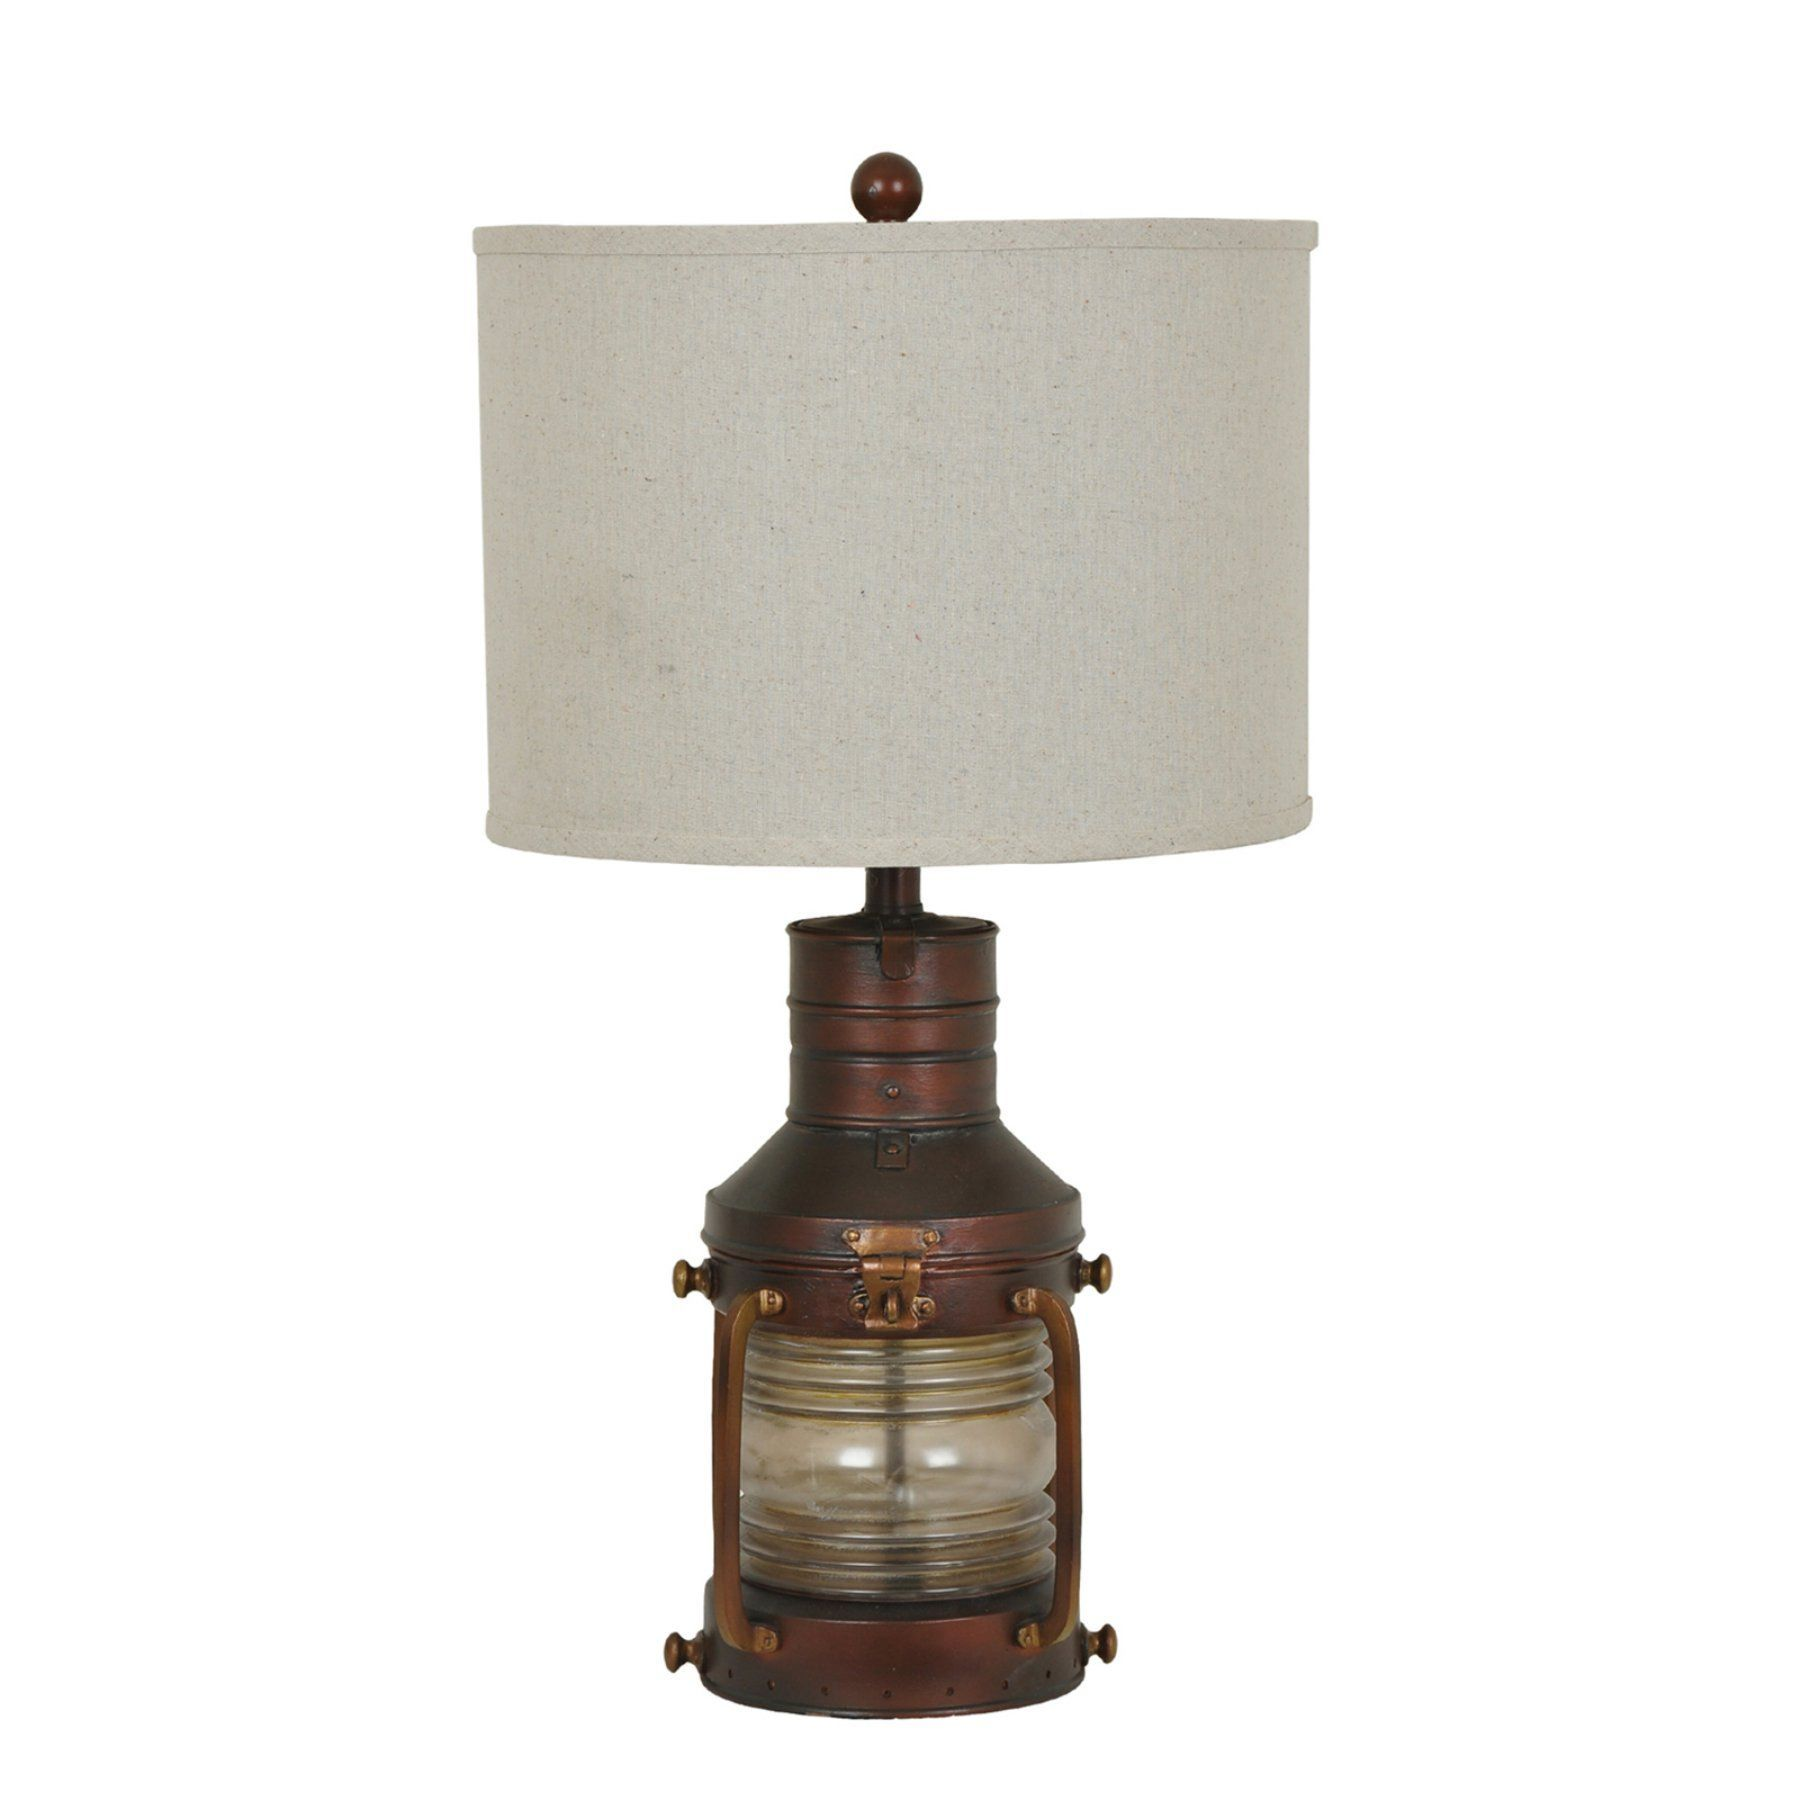 Crestview collection copper lantern table lamp cvabs964 products crestview collection copper lantern table lamp cvabs964 geotapseo Gallery